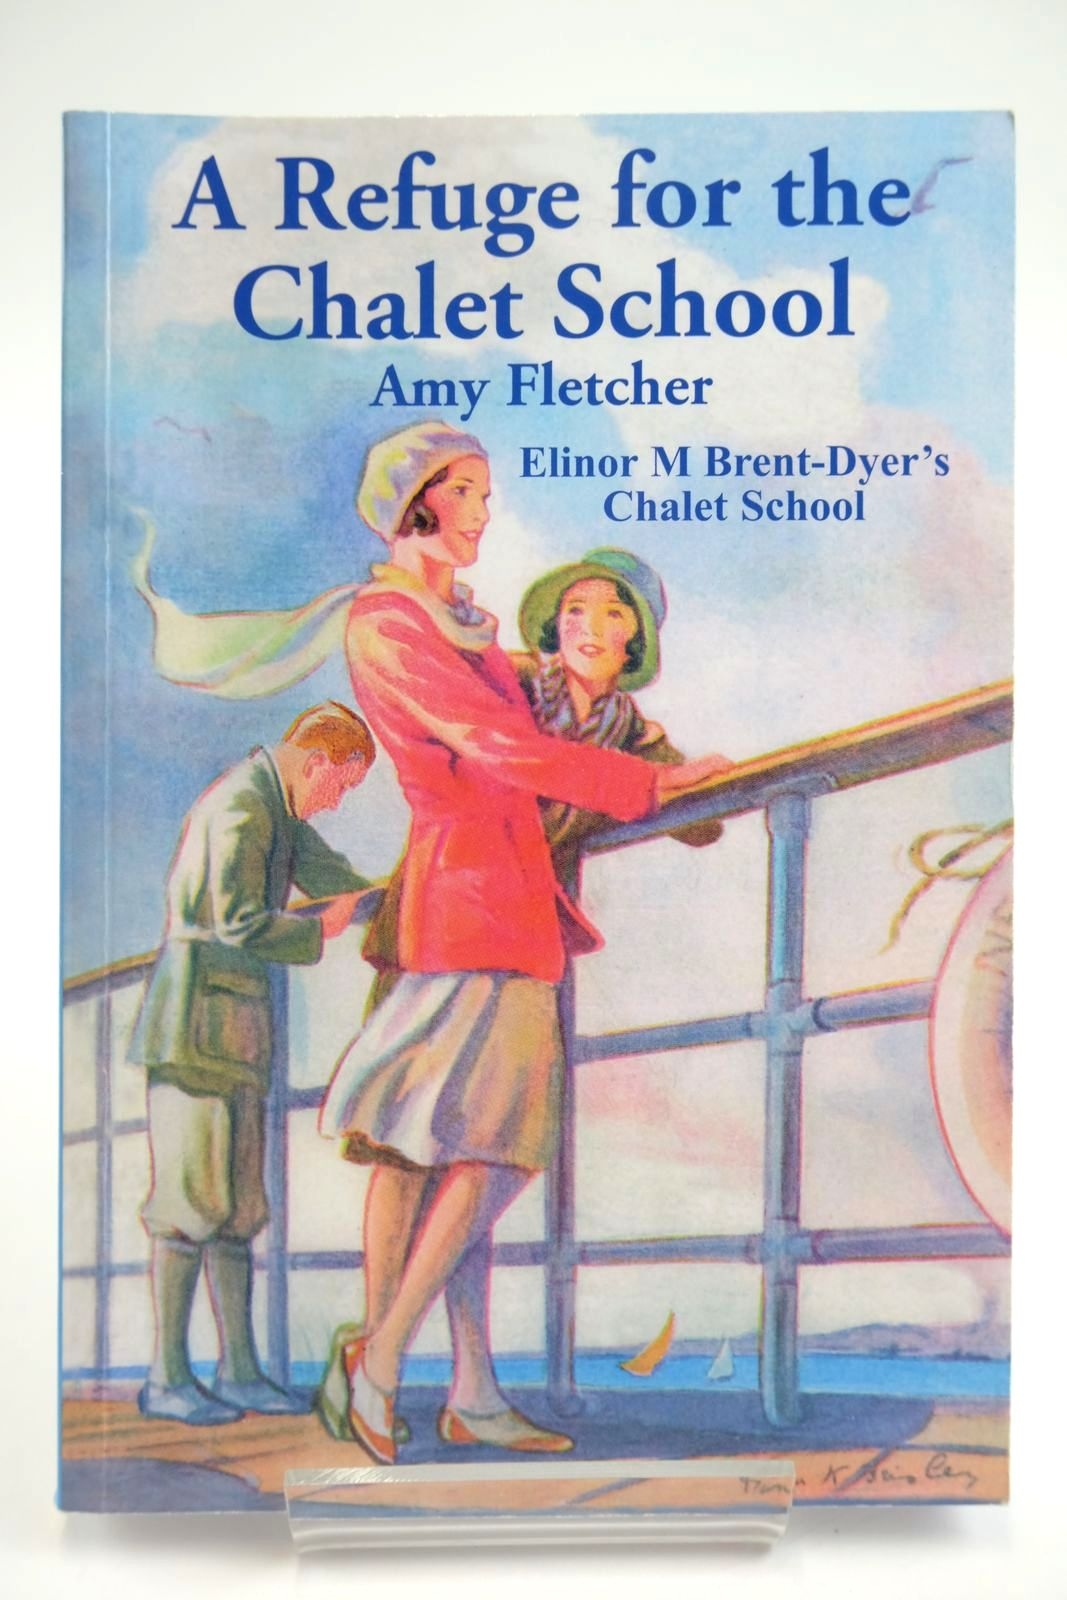 Photo of A REFUGE FOR THE CHALET SCHOOL written by Fletcher, Amy Brent-Dyer, Elinor M. published by Girls Gone By (STOCK CODE: 2133498)  for sale by Stella & Rose's Books